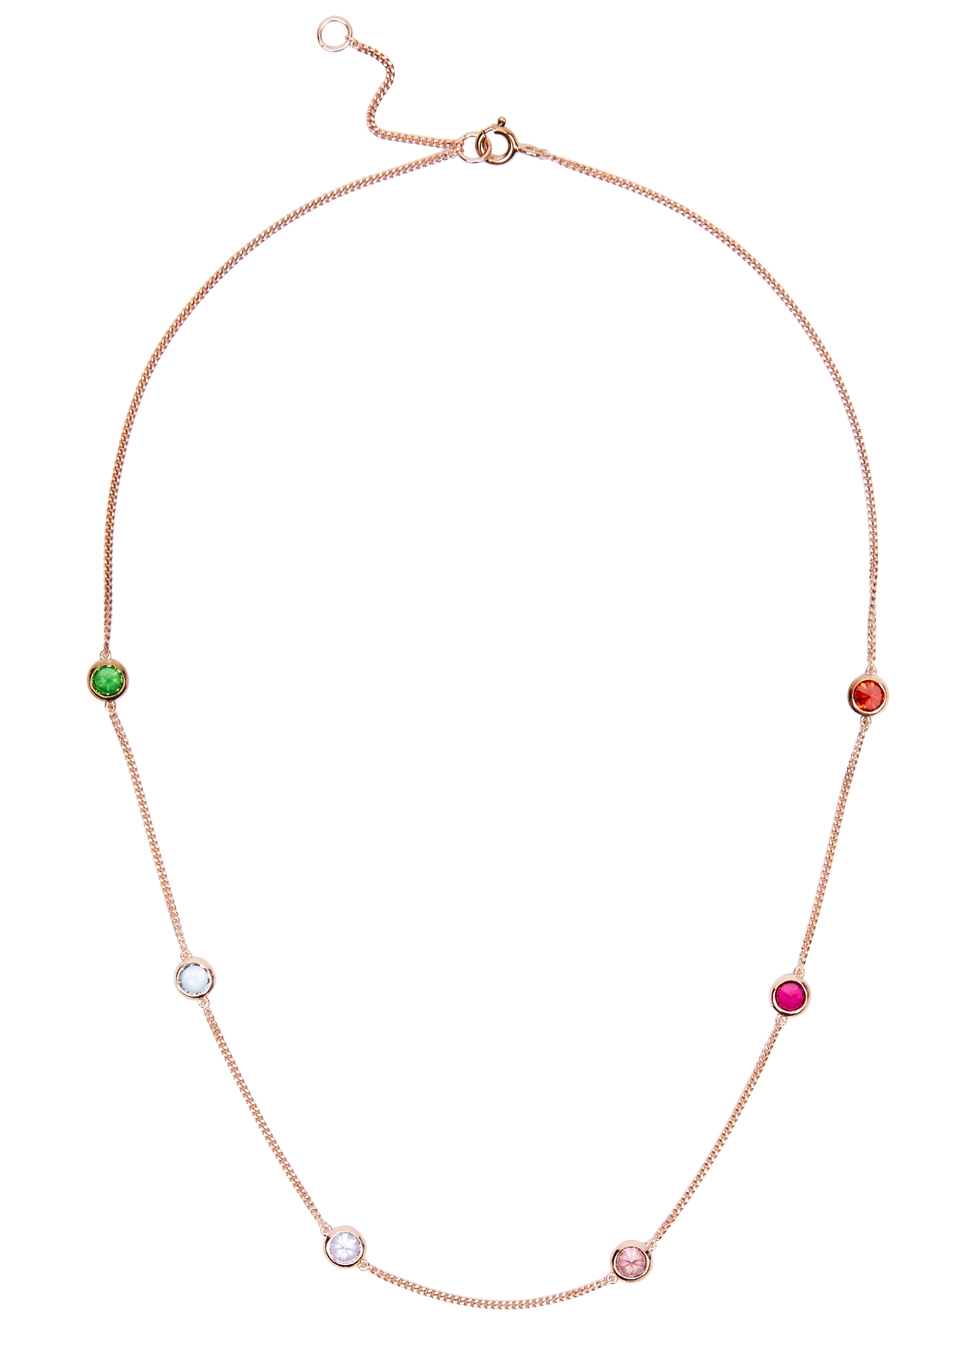 ROSIE FORTESCUE 18Ct Rose Gold-Plated Choker